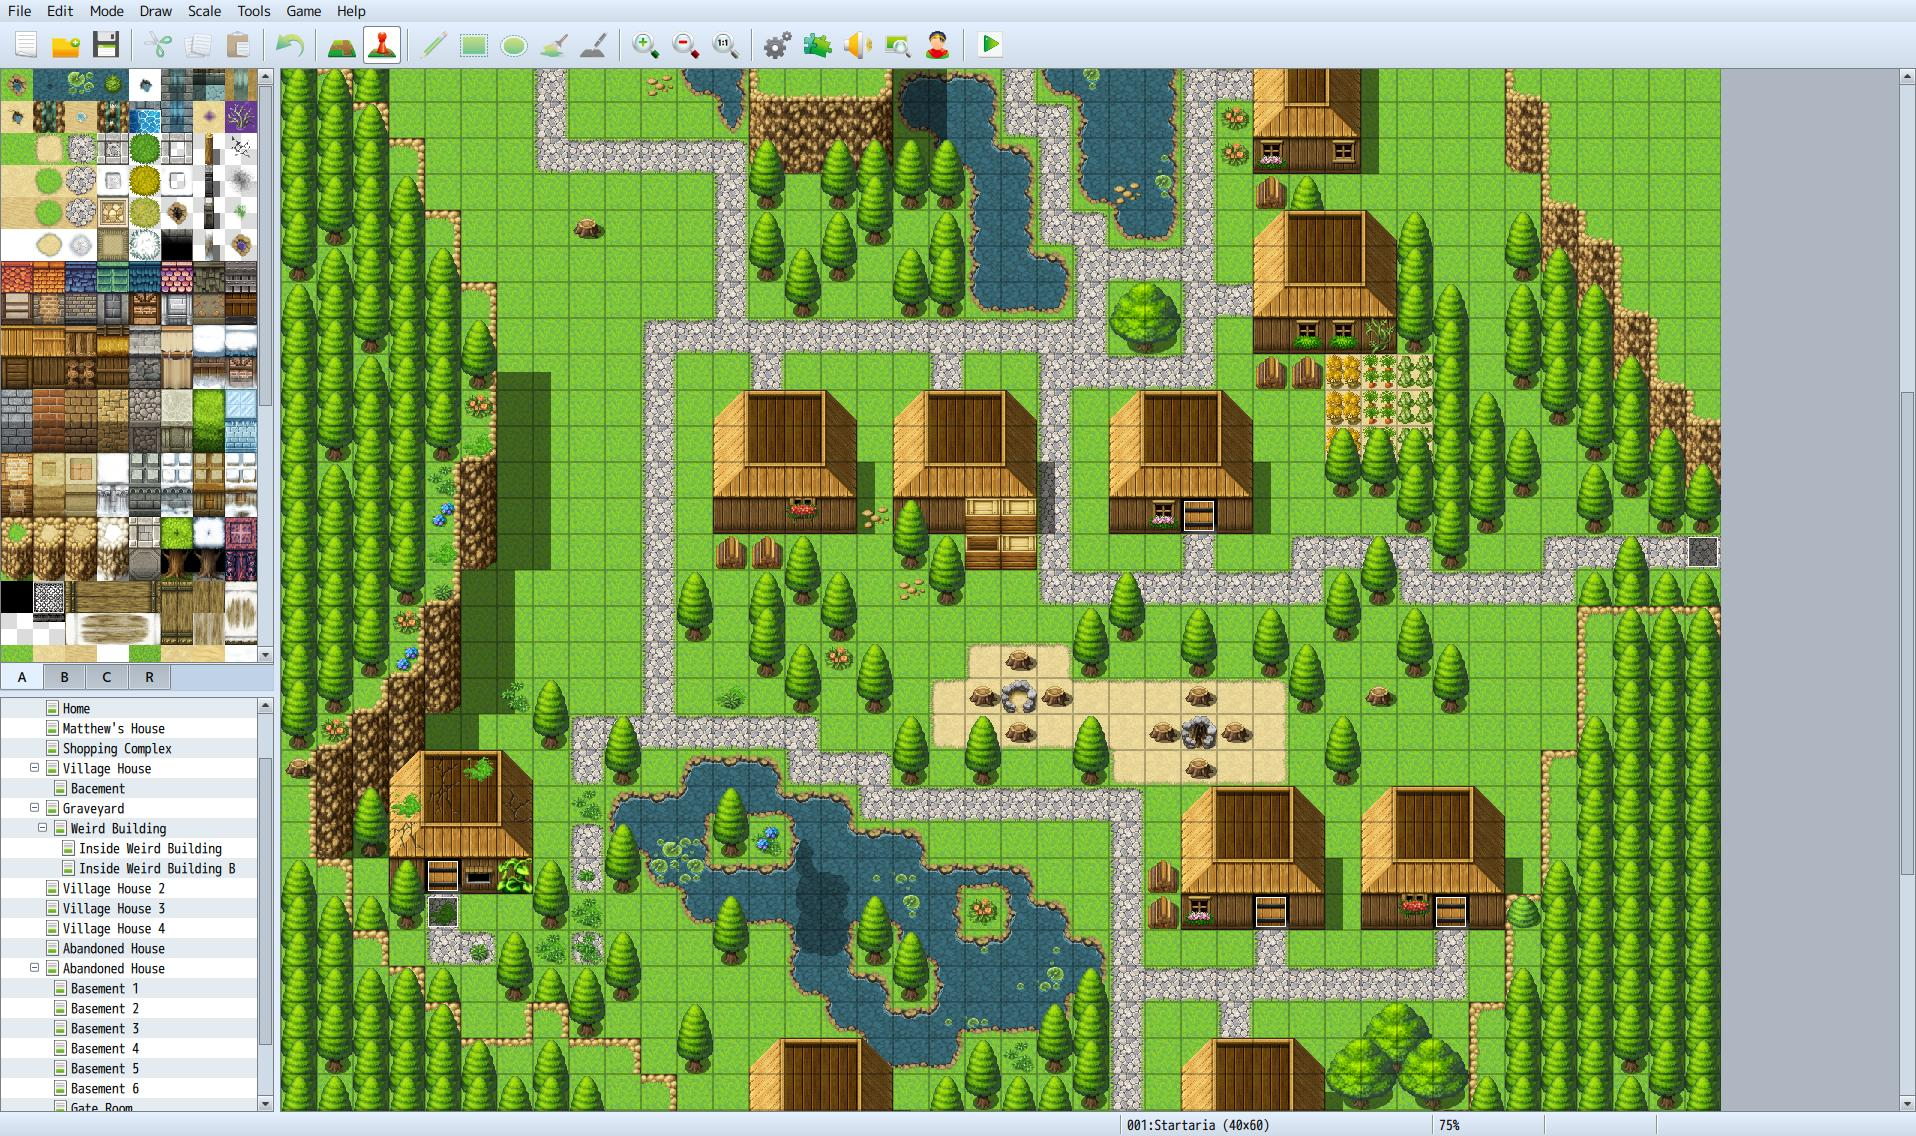 Ah... ye olde starting town. This took a long time to setup and I'm still not satisfied with it.